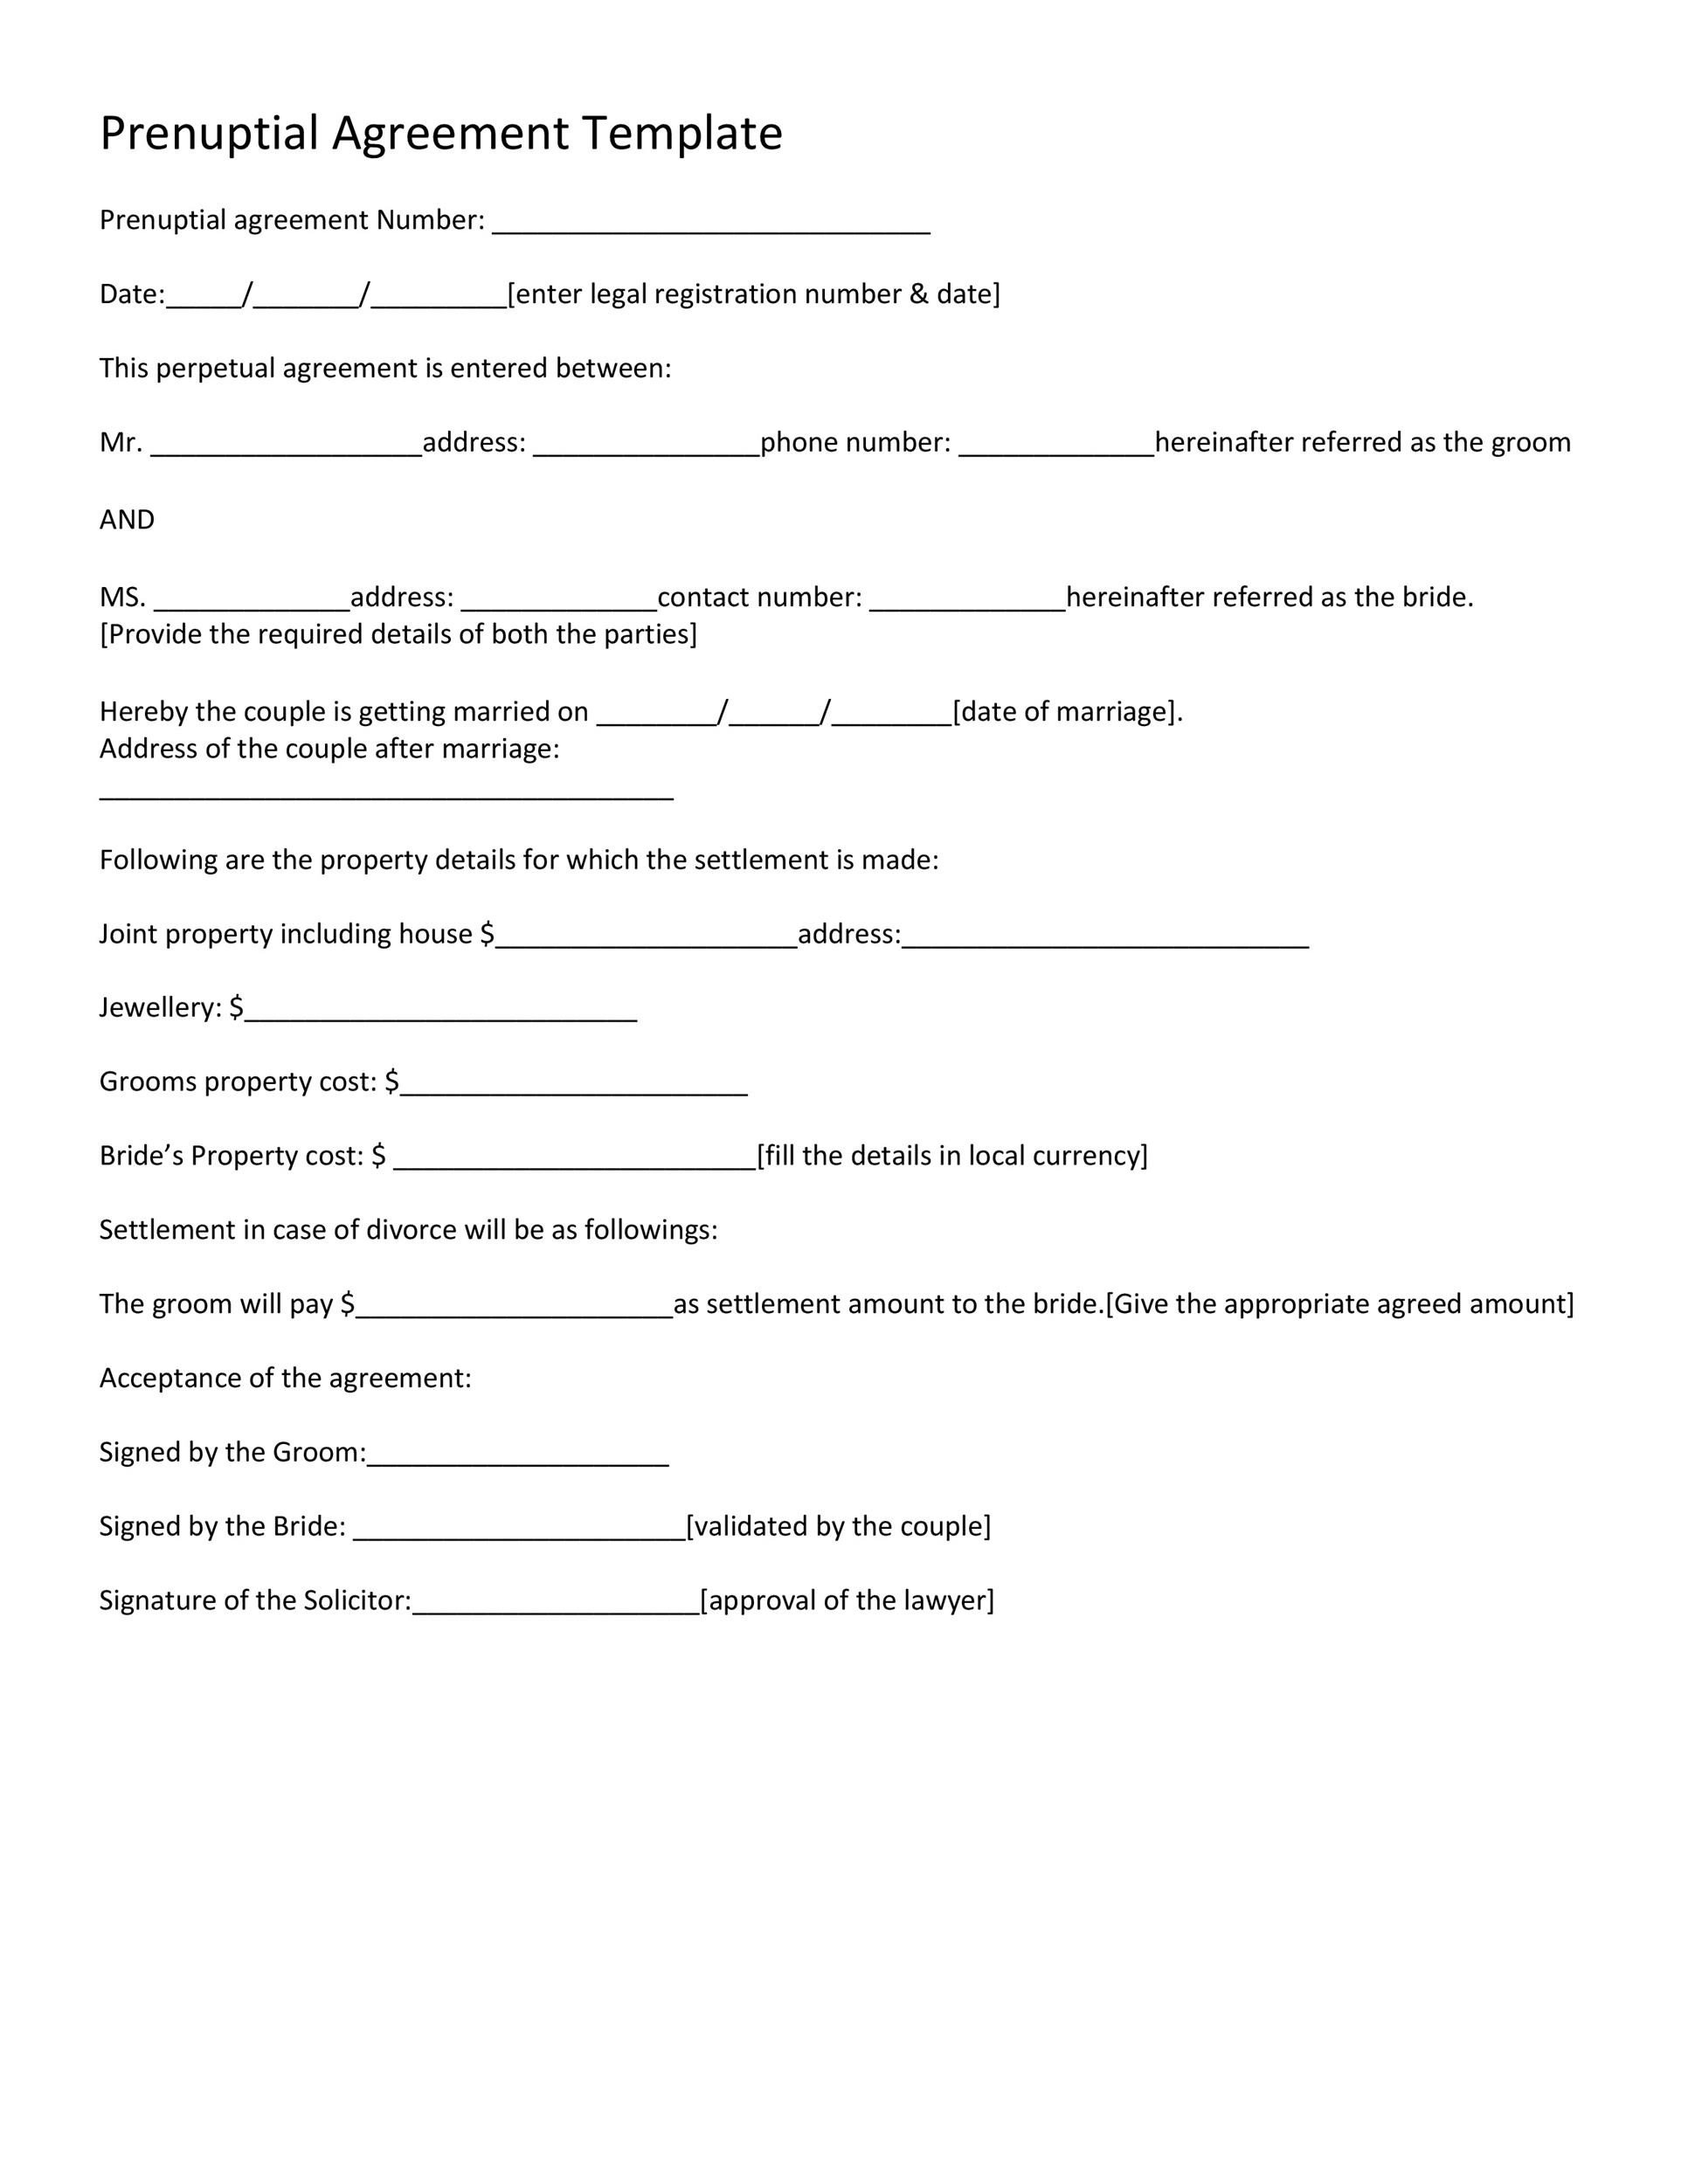 Free Prenuptial Agreement Template 26